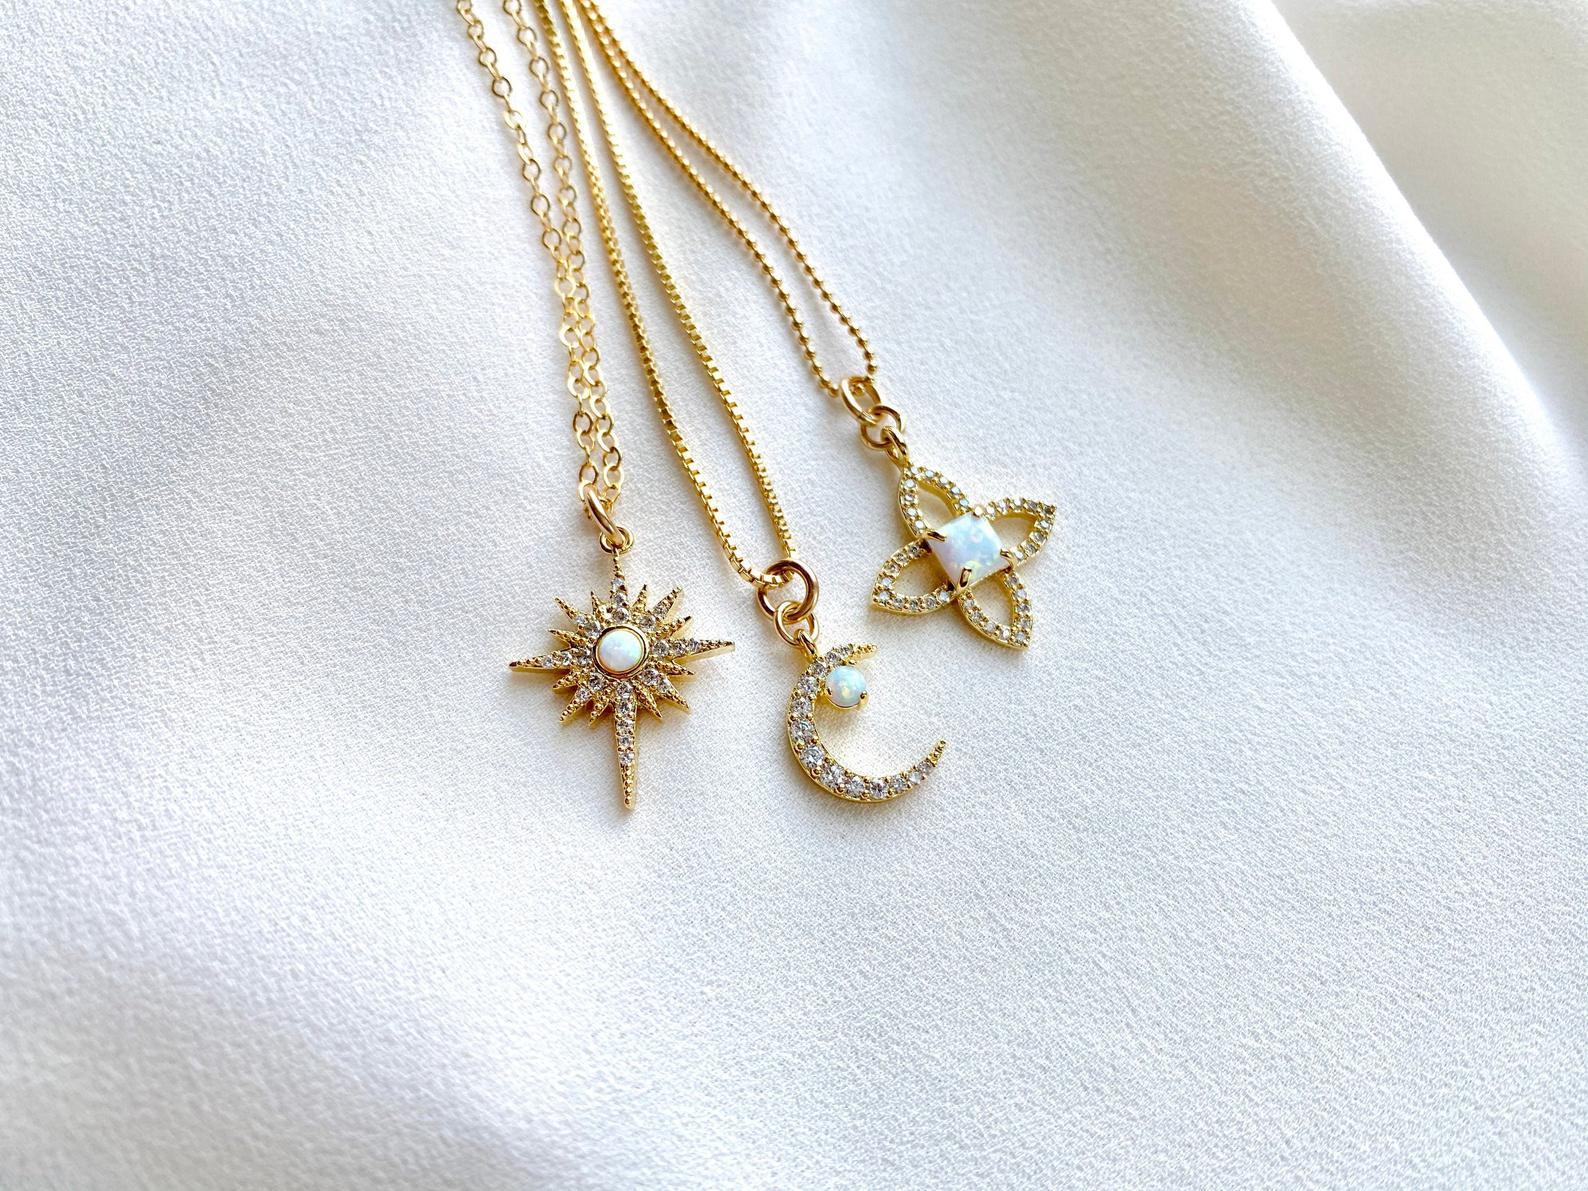 Dainty Opal Charm Necklaces - Crescent Moon - North Star - Flower